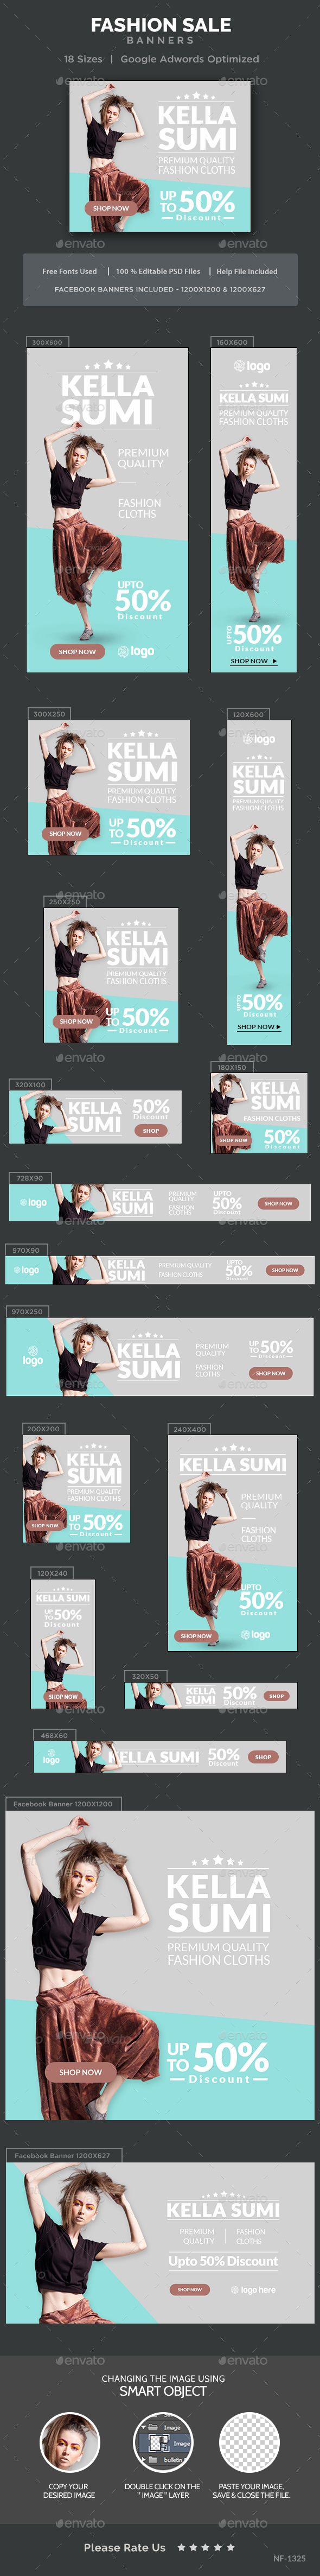 Fashion Sale Banners Template PSD. Download here: http://graphicriver.net/item/fashion-sale-banners/16431220?ref=ksioks